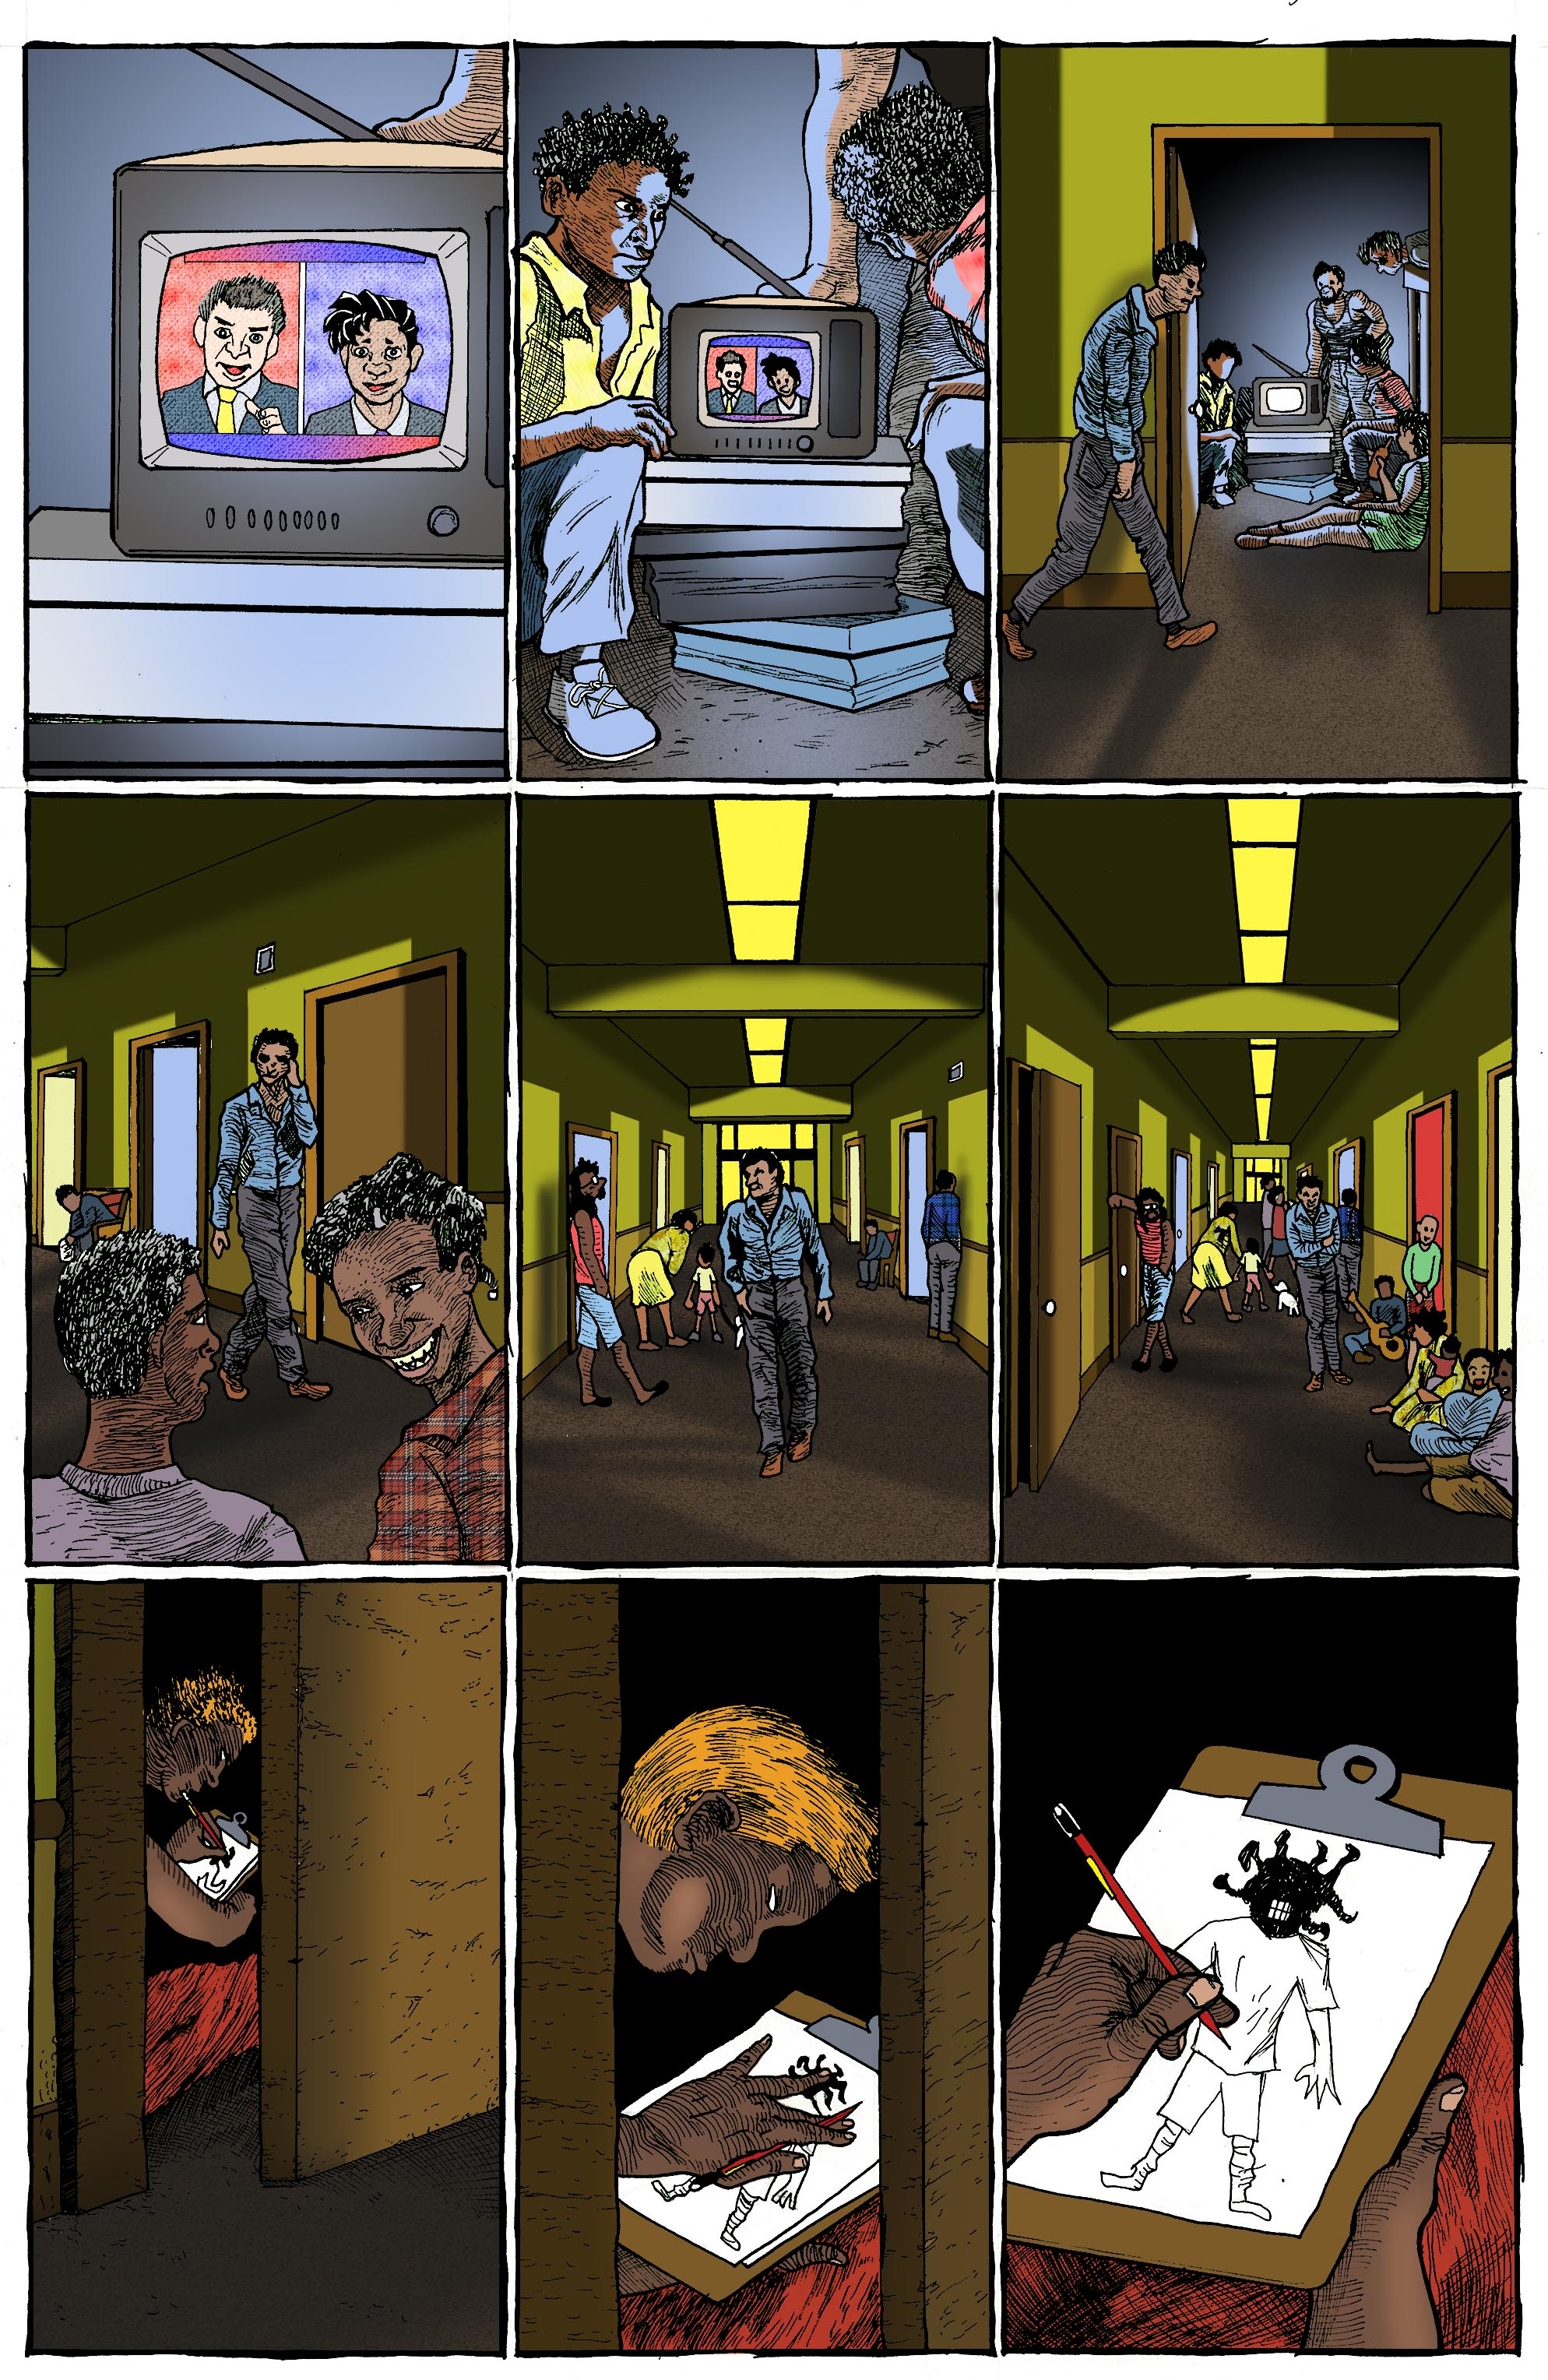 Chapter 5 Page 1 Small.jpg